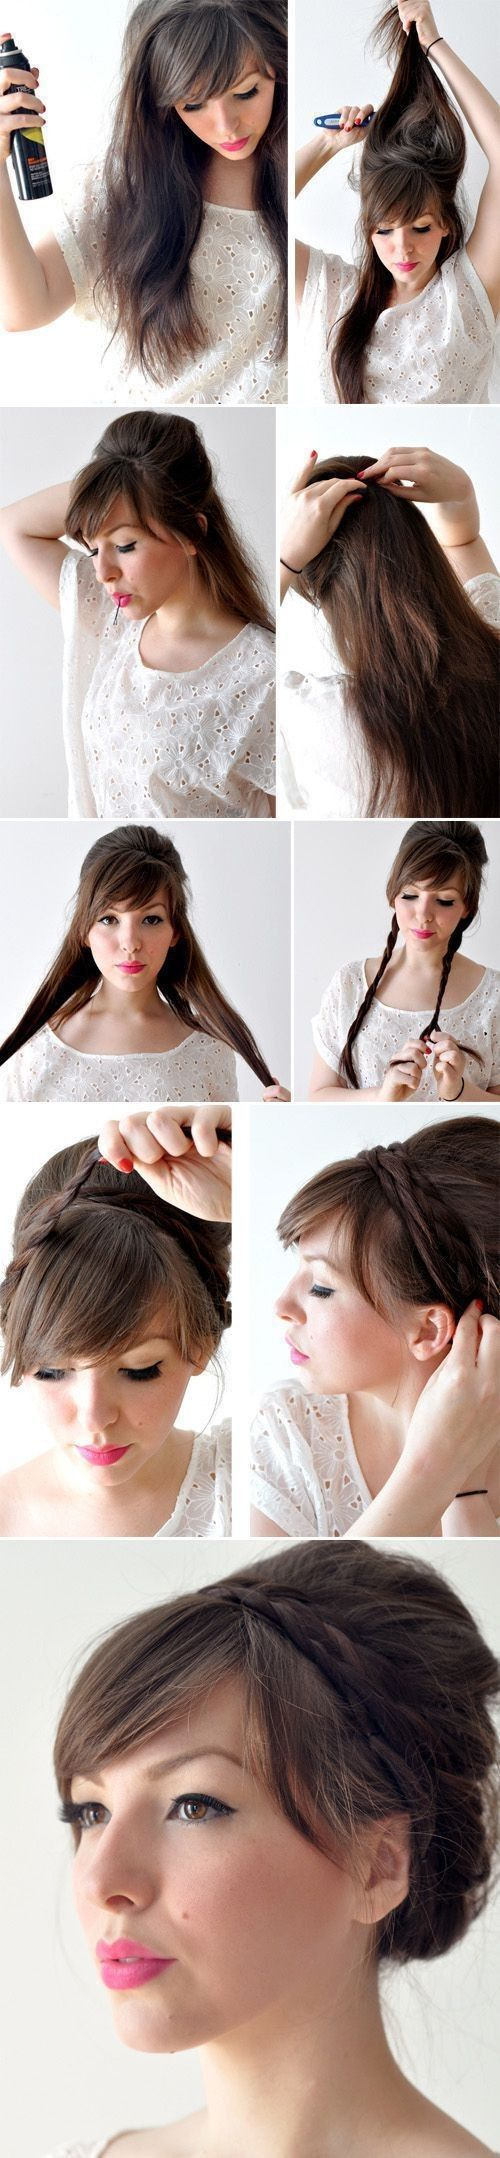 Like this one but my bangs might be too long?